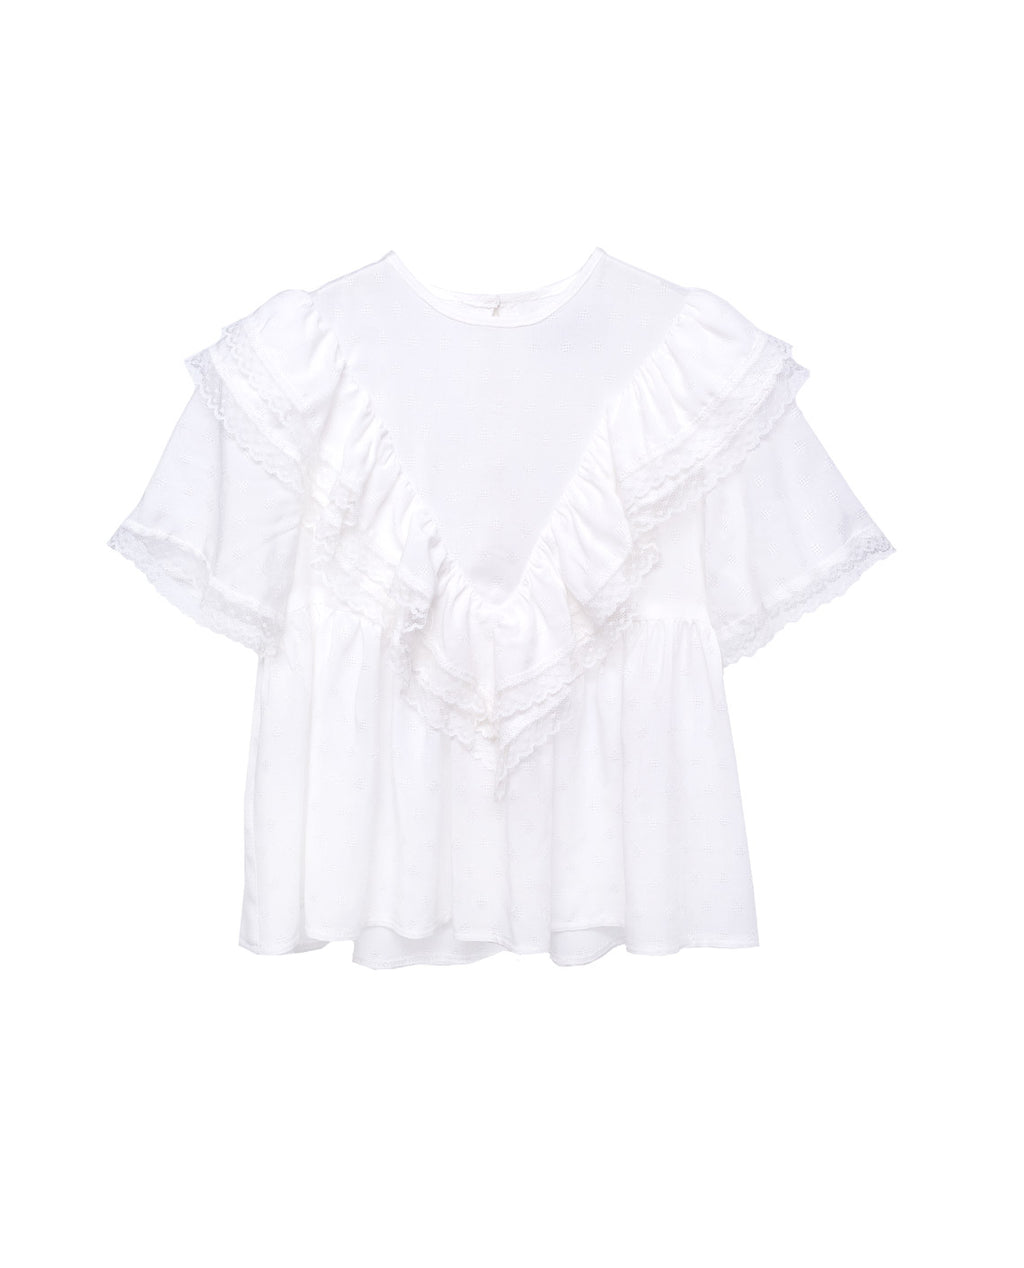 Viscose Blouse - Phlox White